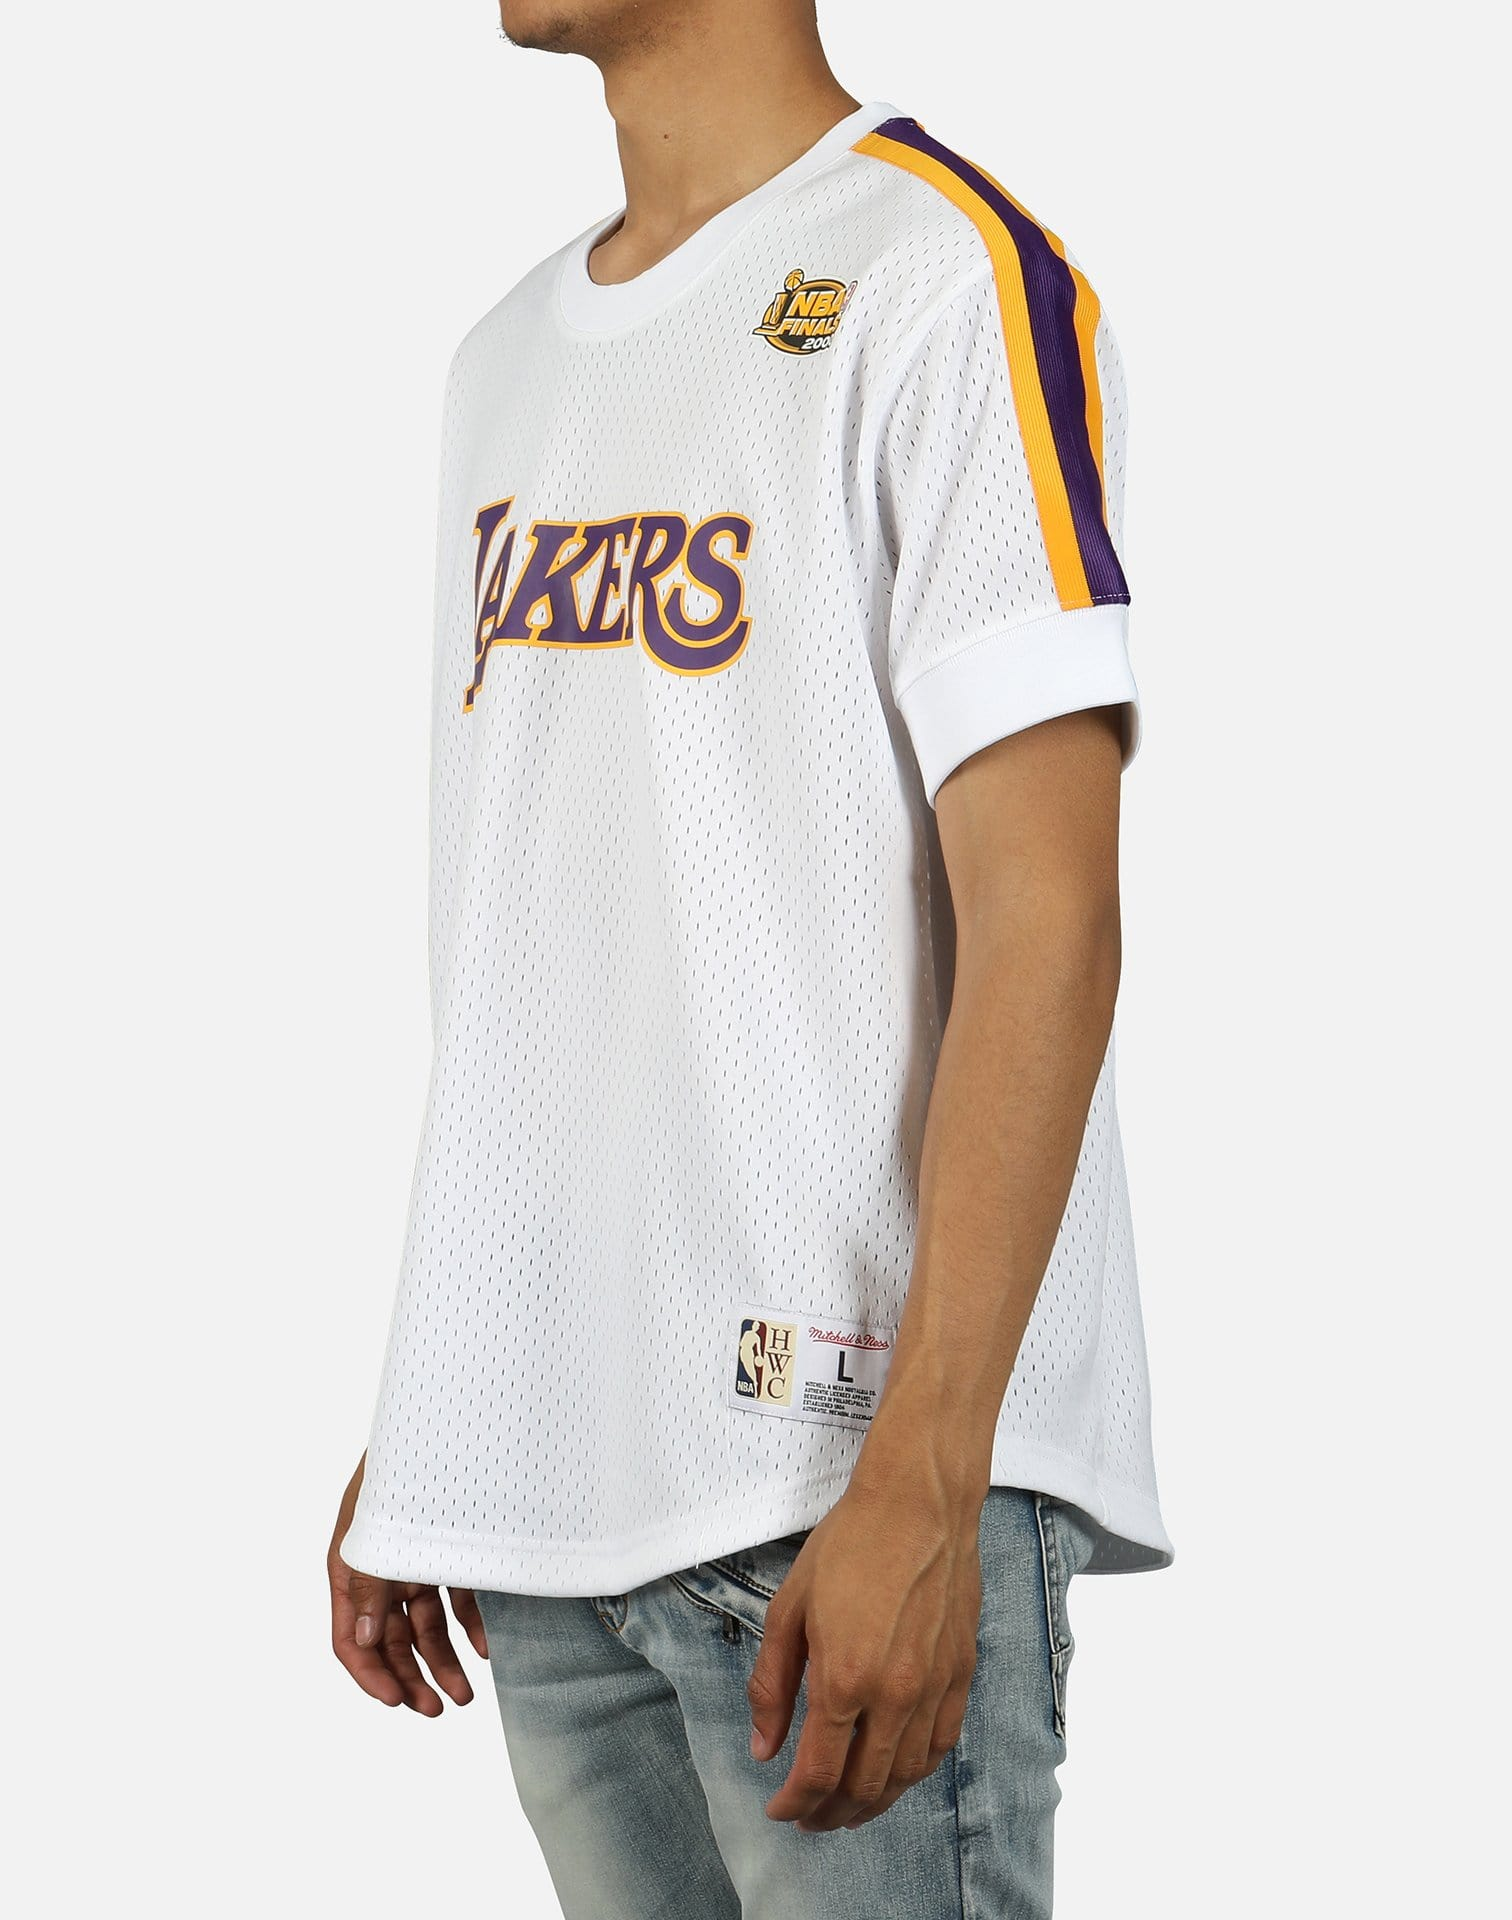 Mitchell & Ness Men's NBA Finals 2000 Los Angeles Lakers Mesh Jersey Shirt